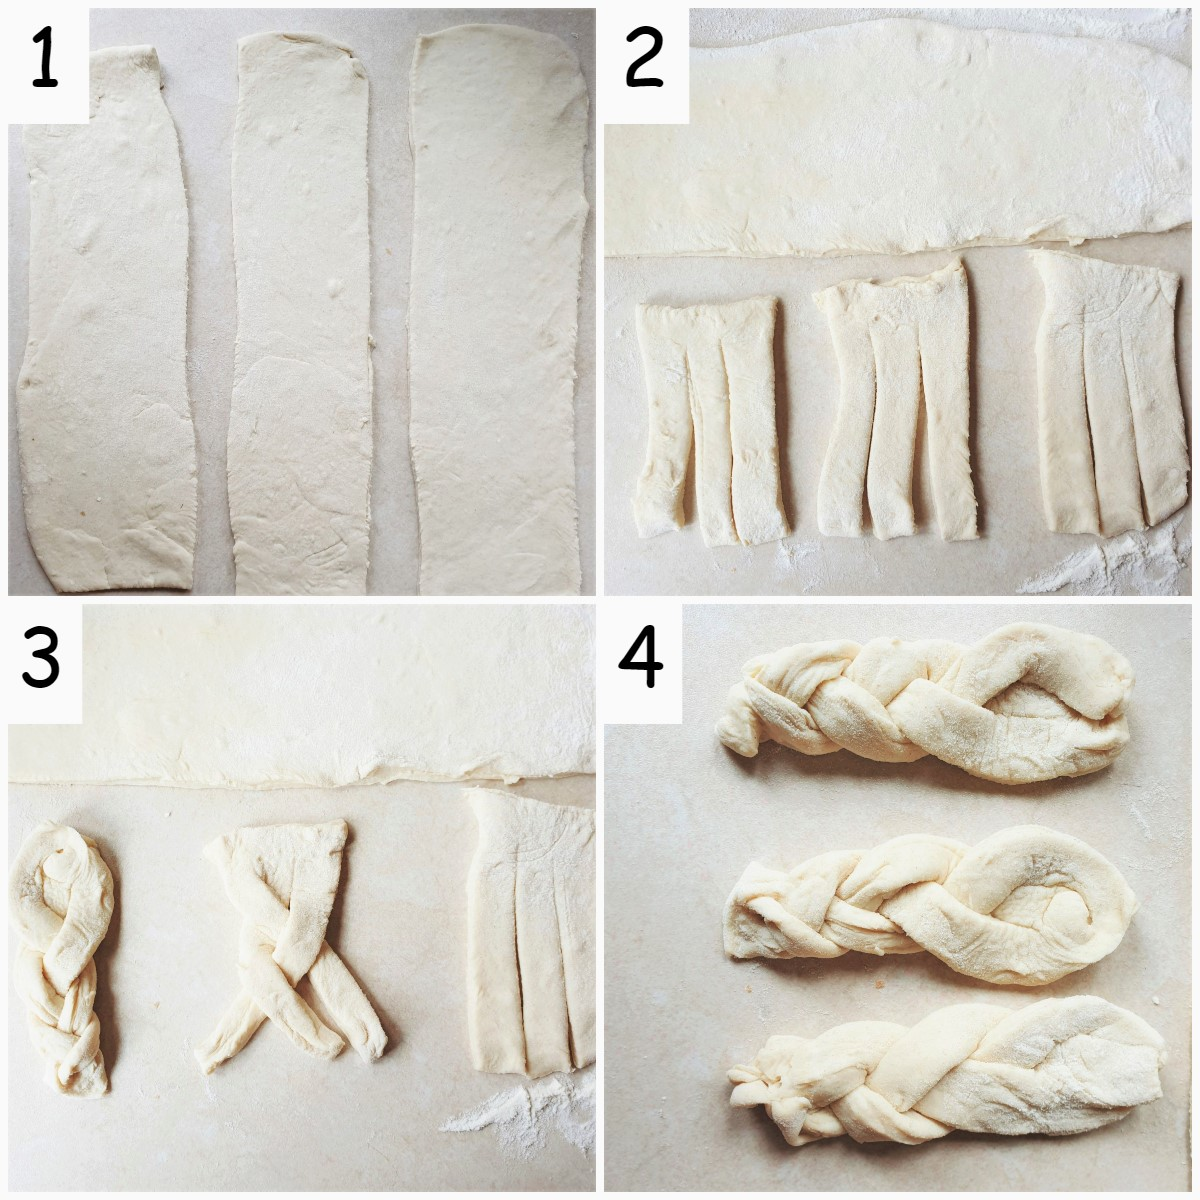 A collage of 4 images showing steps for rolling, cutting and braiding the koeksister dough.